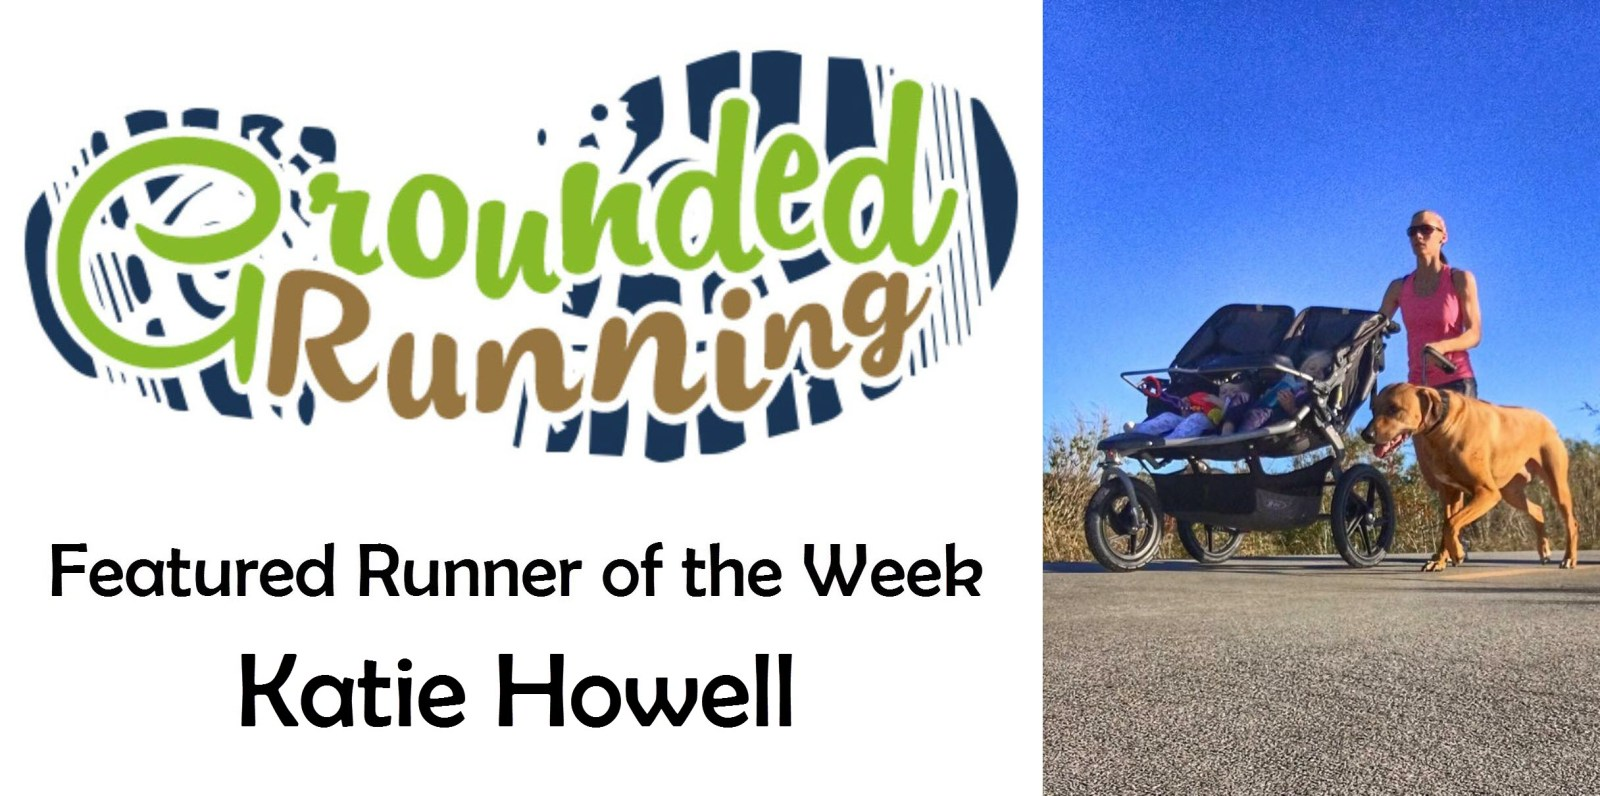 Katie Howell - Featured Runner of the Week